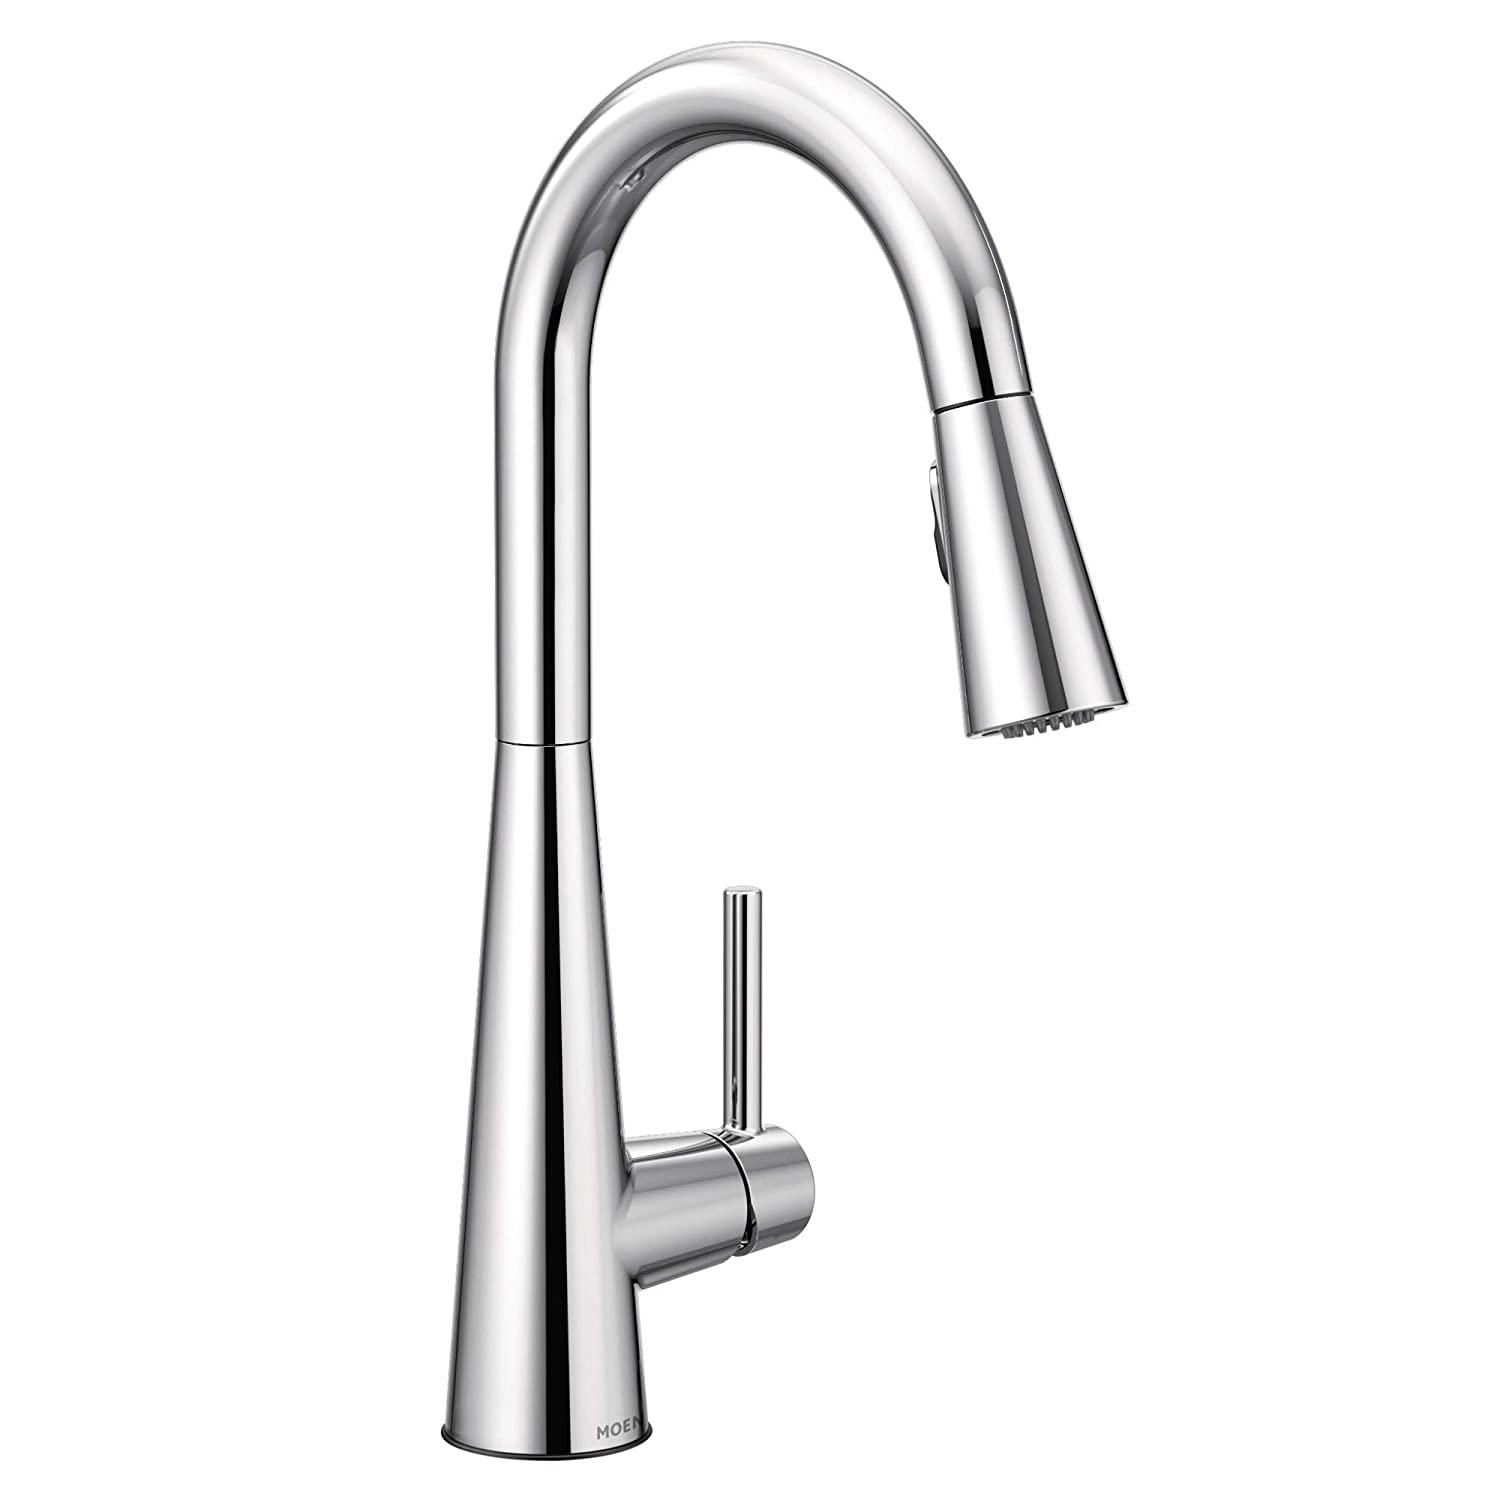 Moen 7864 Sleek One-Handle High Arc Pulldown Kitchen Faucet Featuring Power Clean, Chrome